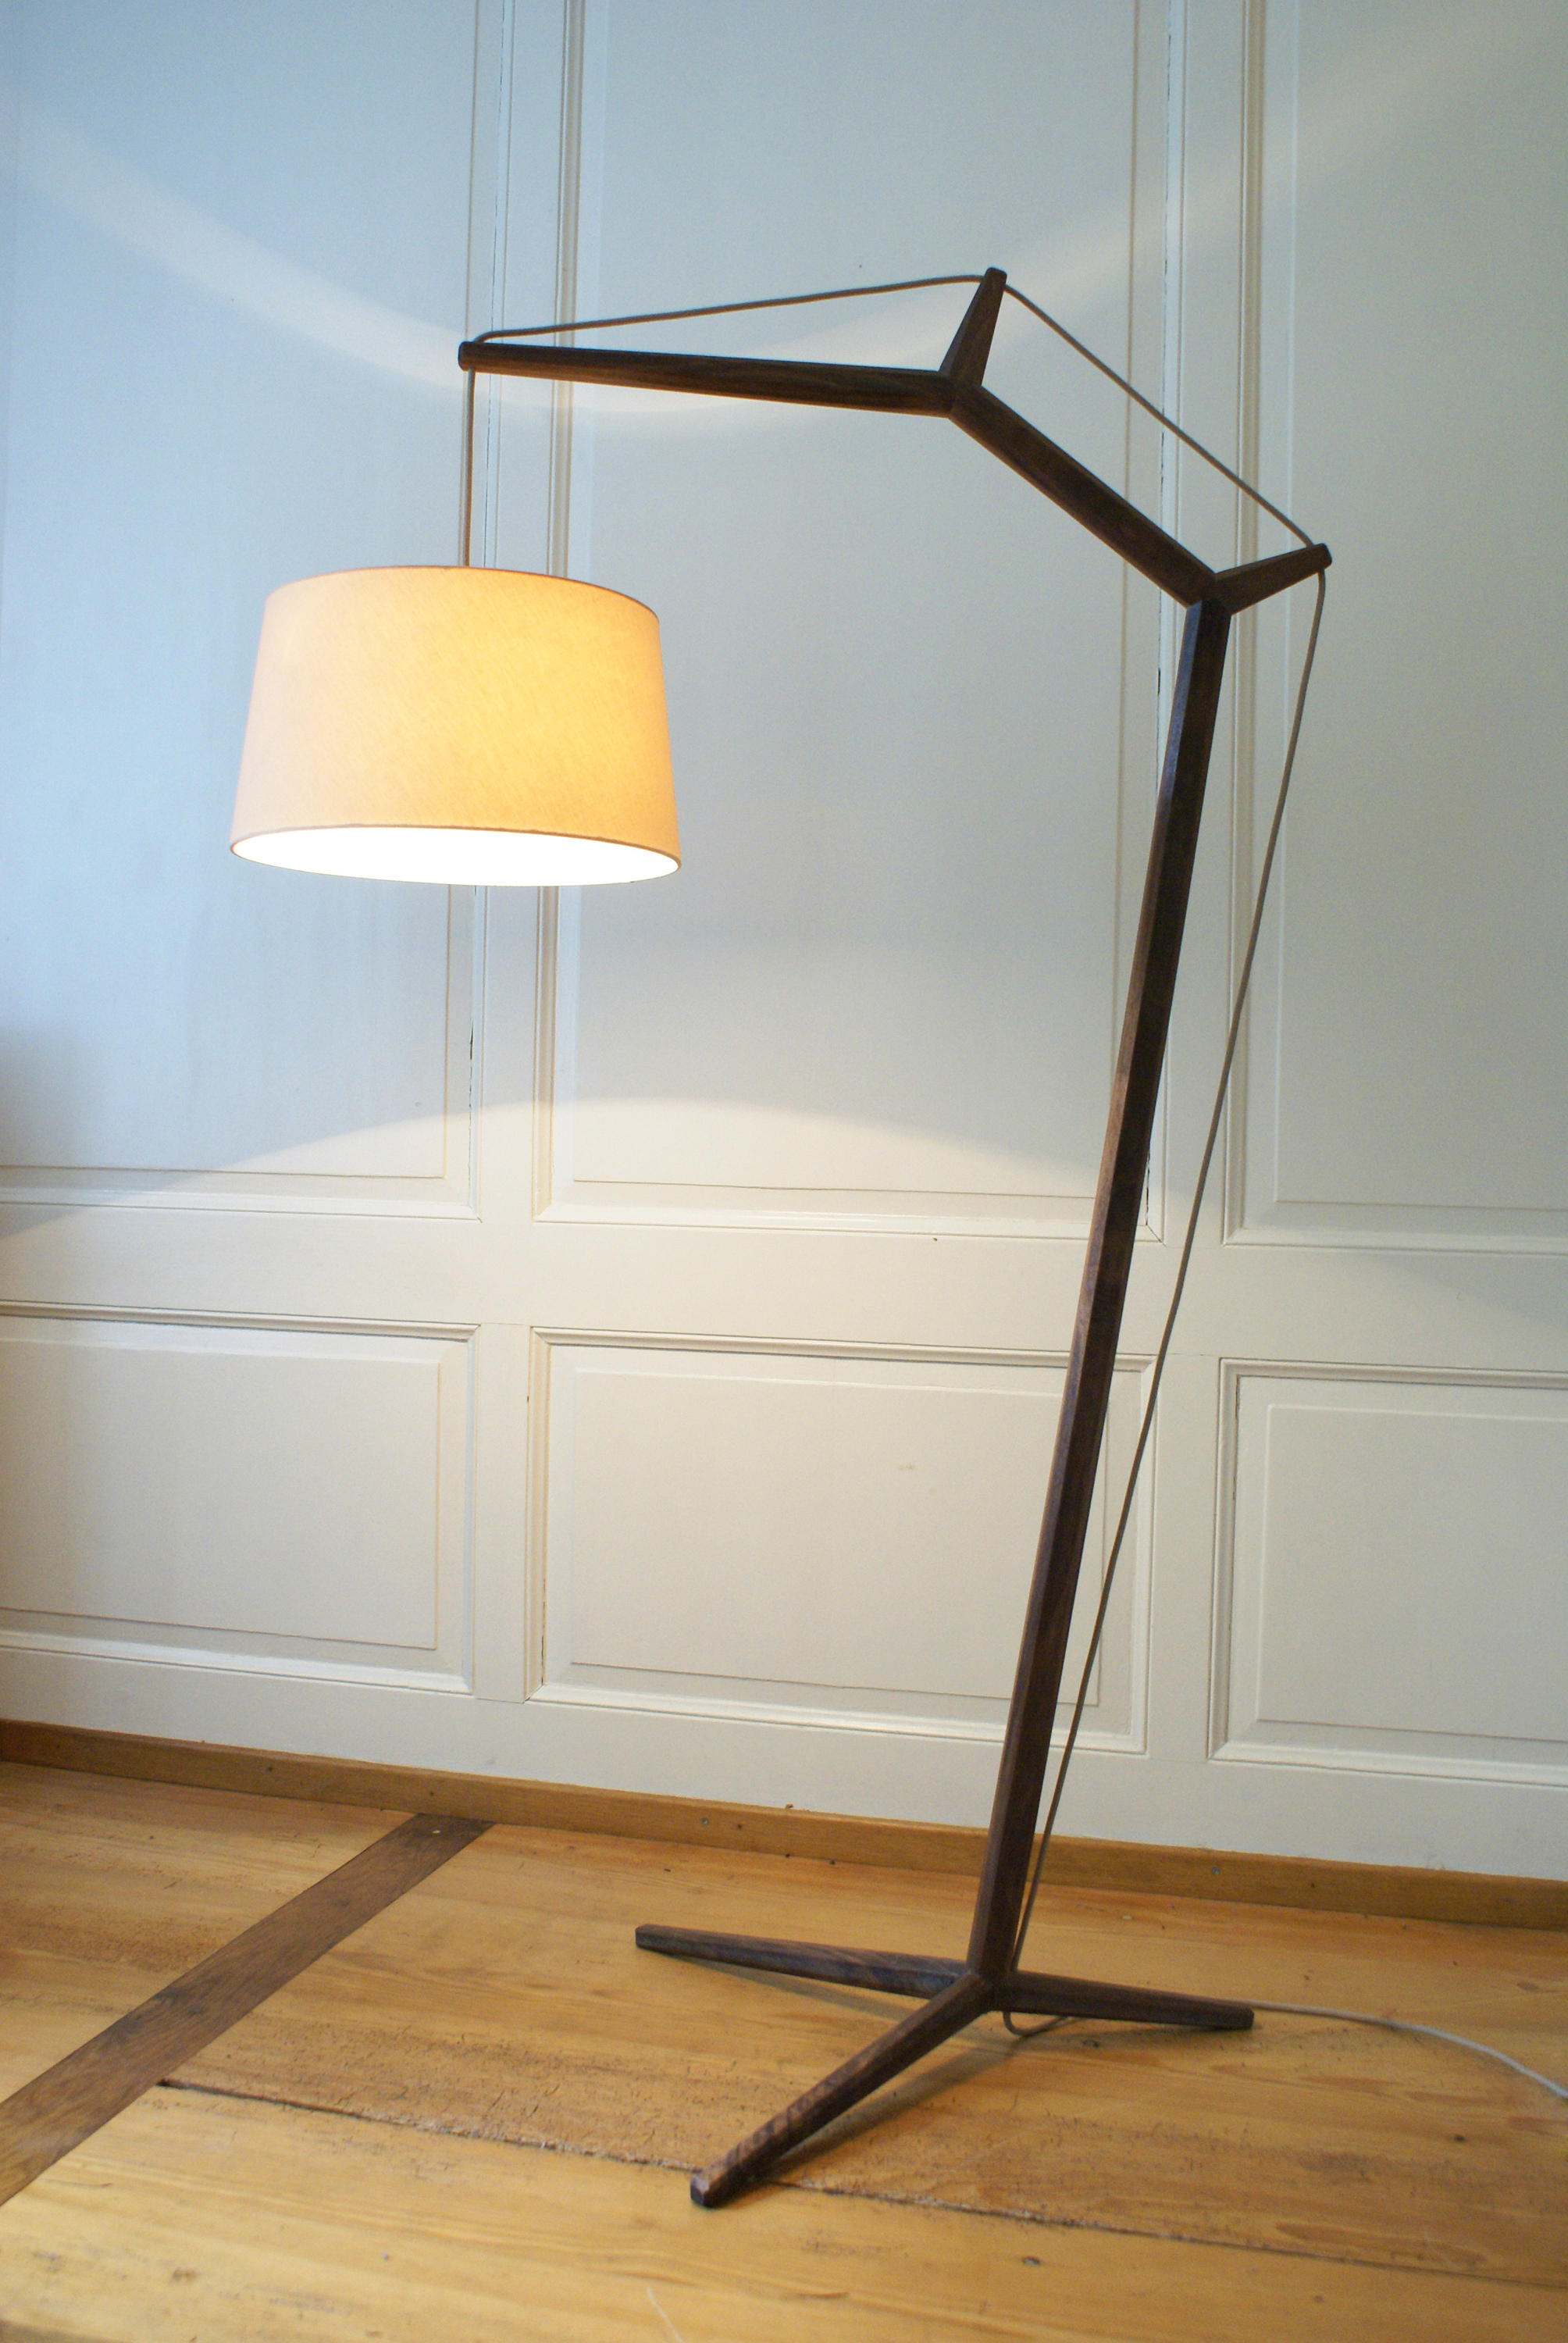 Puu floor lamp general lighting from mhpd architonic puu floor lamp by mhpd mozeypictures Choice Image